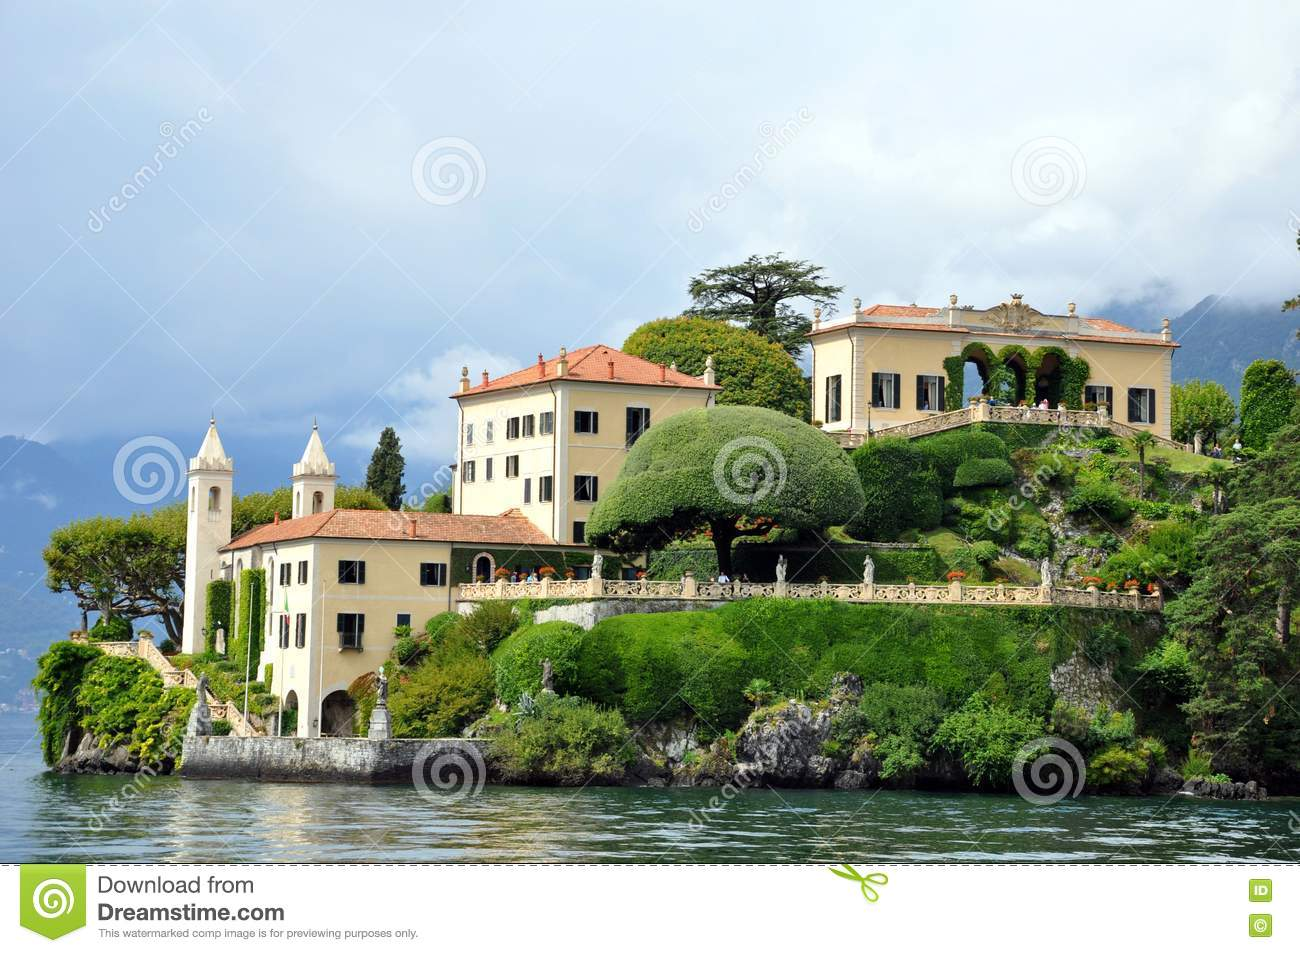 Villa balbianello at Lenno lake como